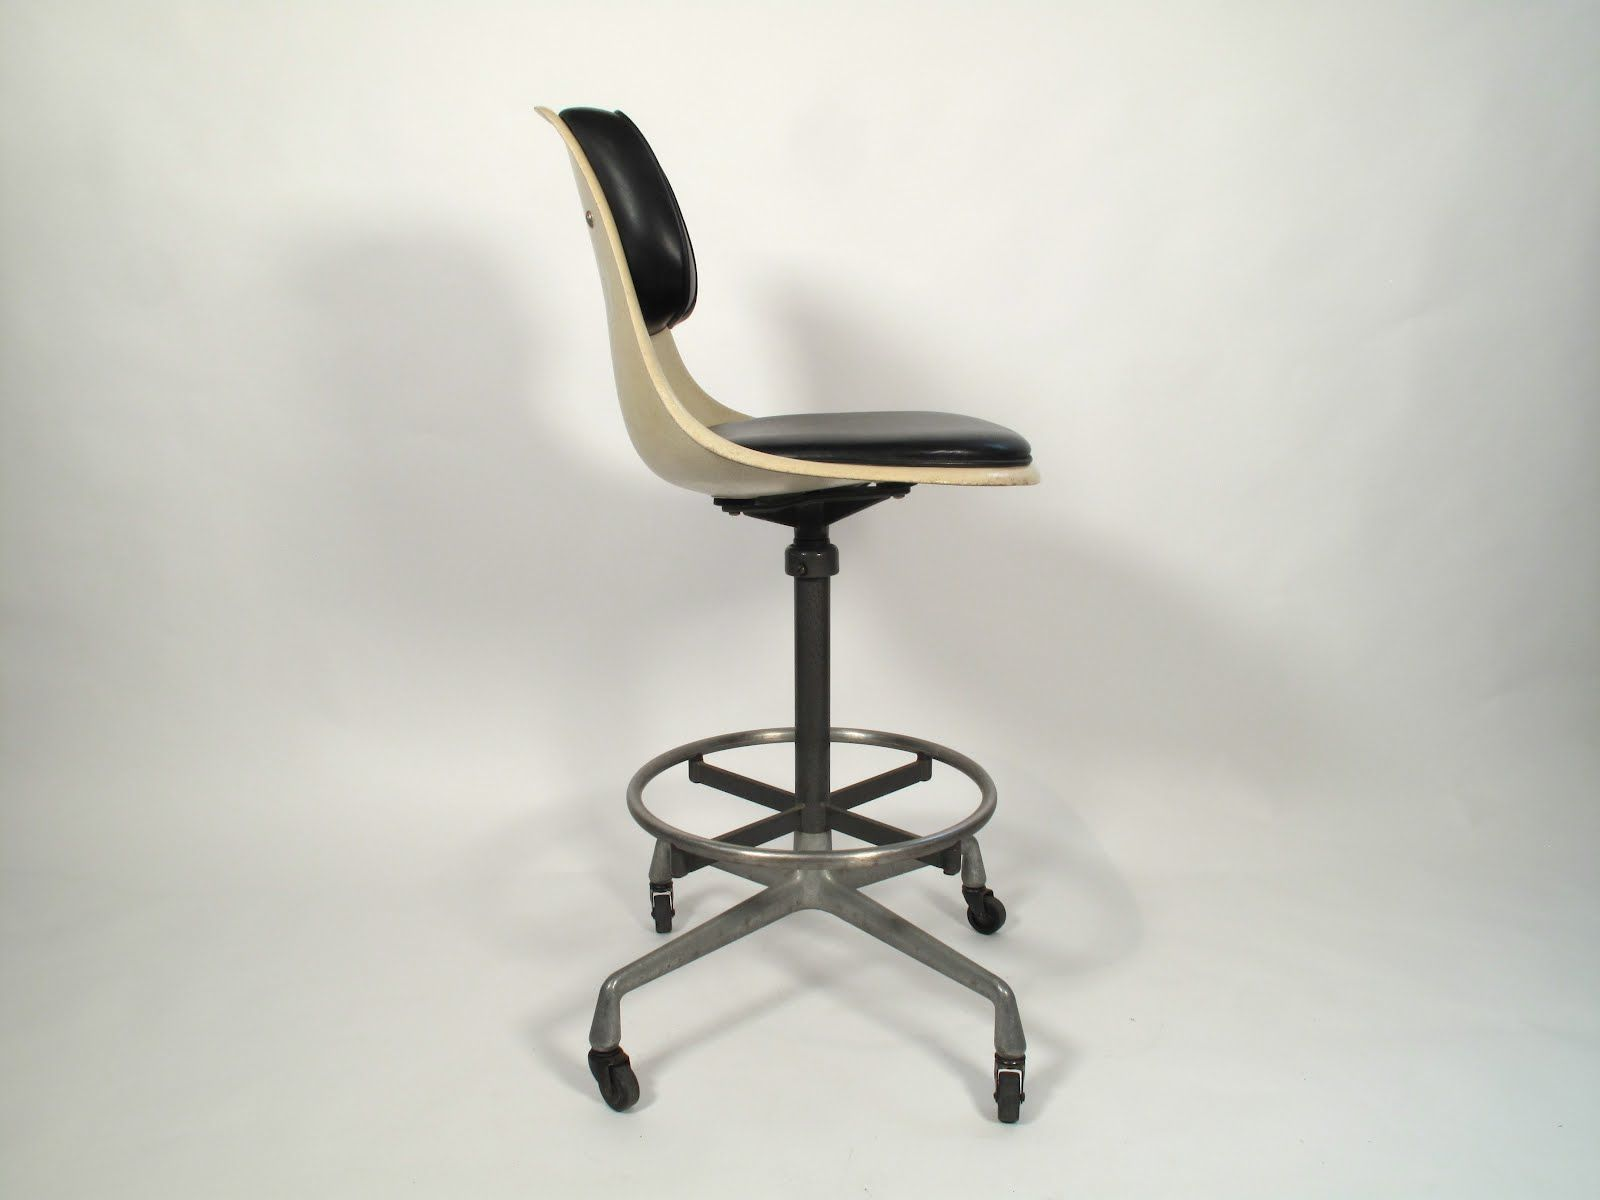 Eames circa 1060- interesting mix of molded plastic with vinyl/leather upholstery. Love the black and white combination. & Eames circa 1060- interesting mix of molded plastic with vinyl ...